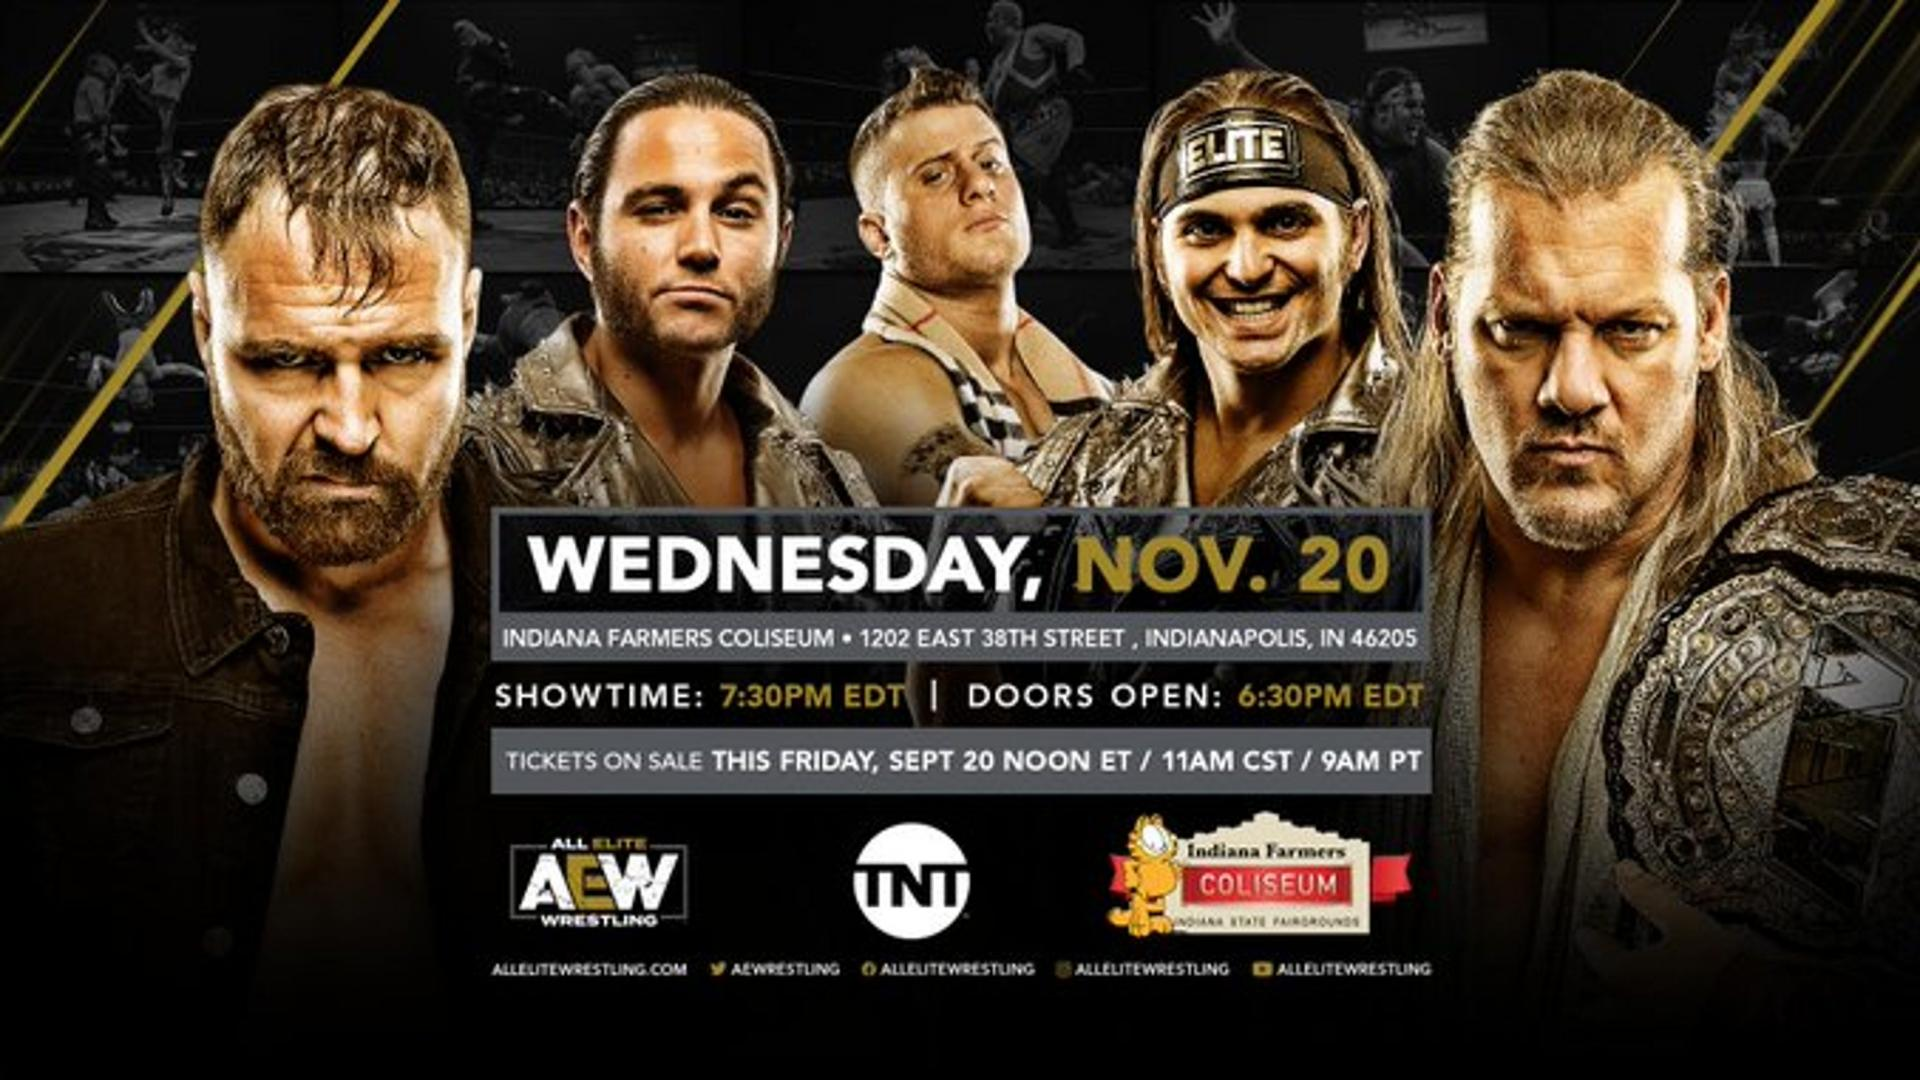 More Matches for AEW World Title Revealed